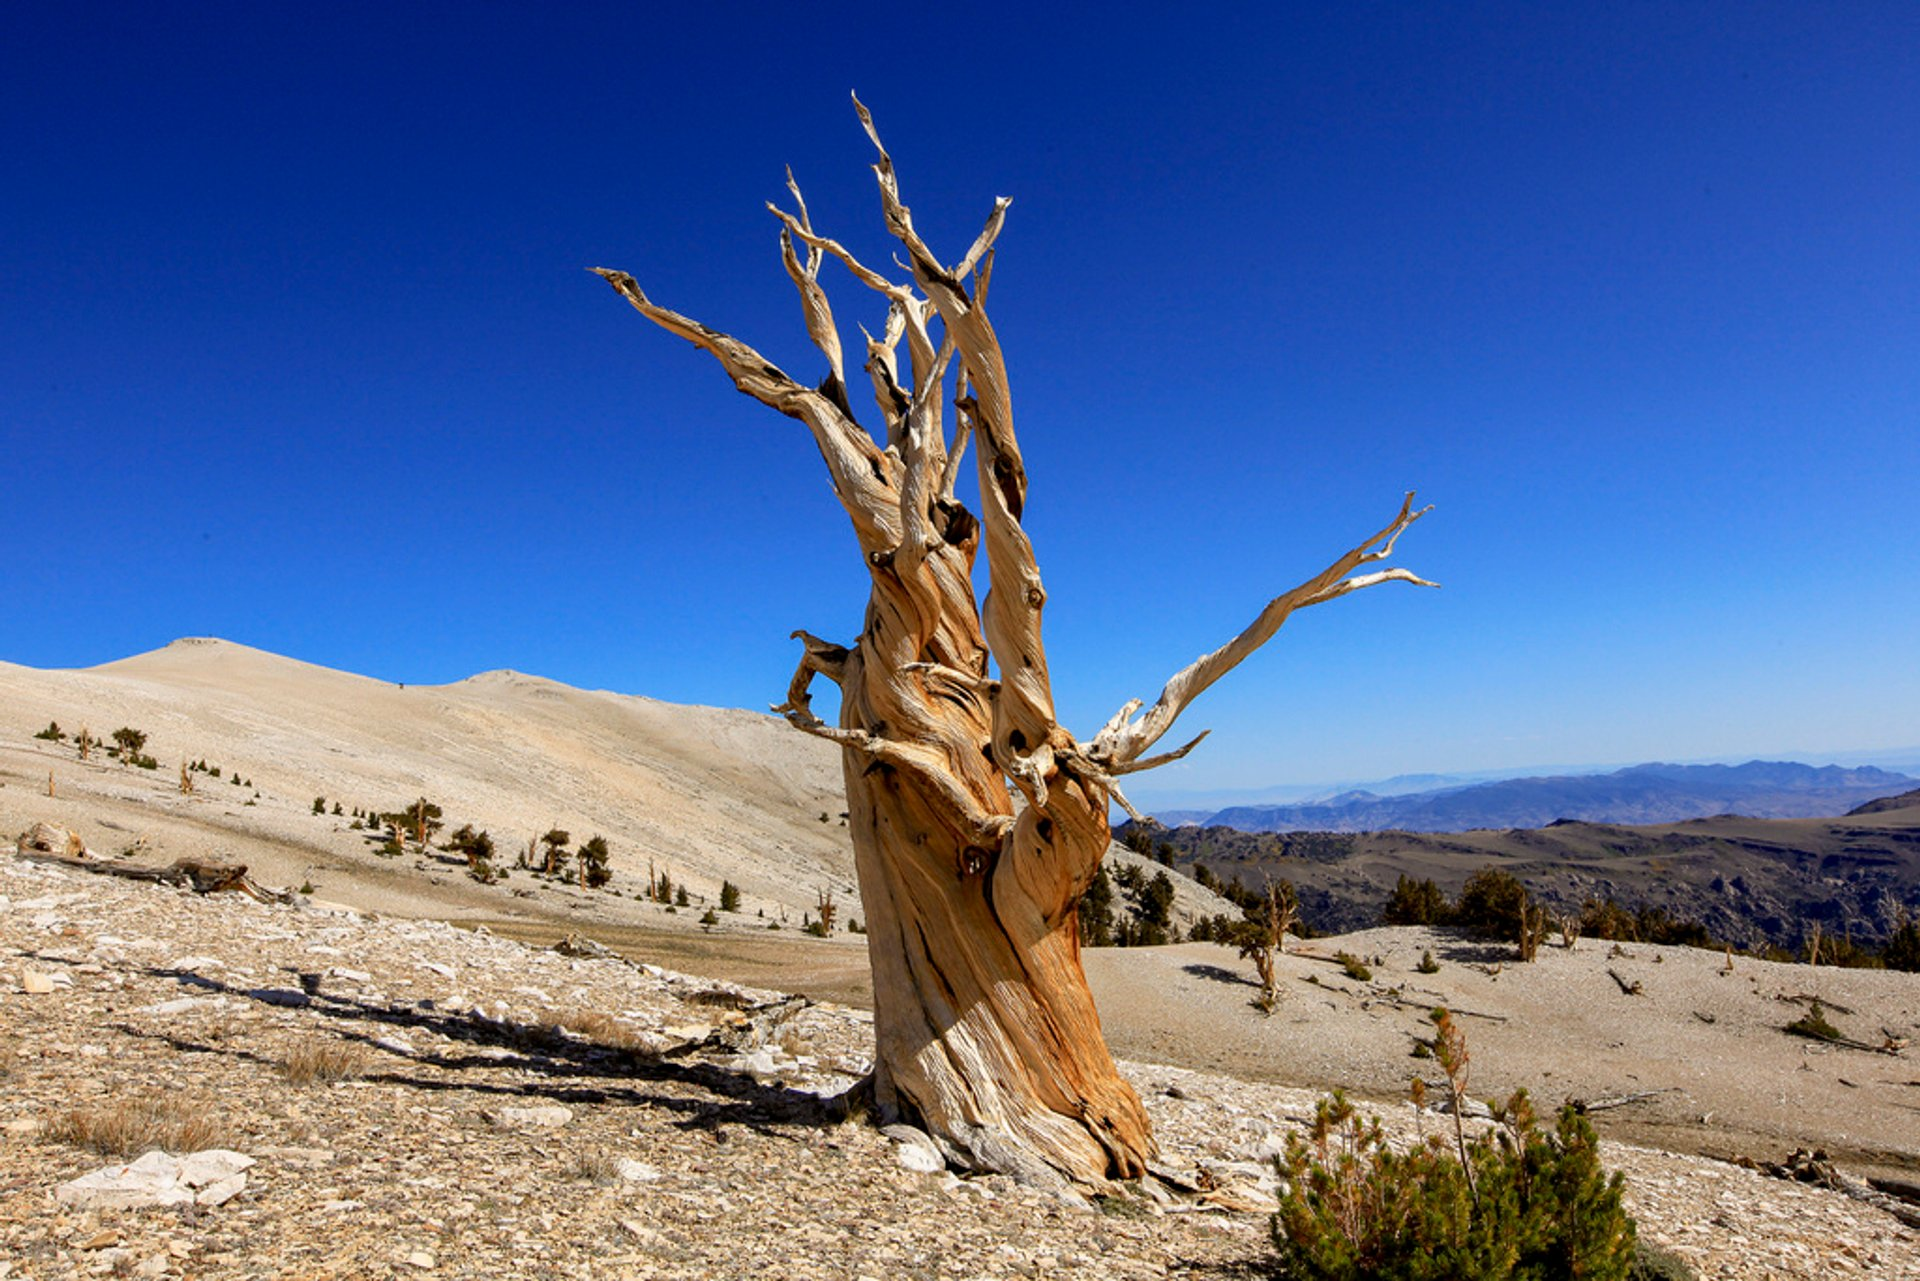 Bristlecone Pines in California 2020 - Best Time